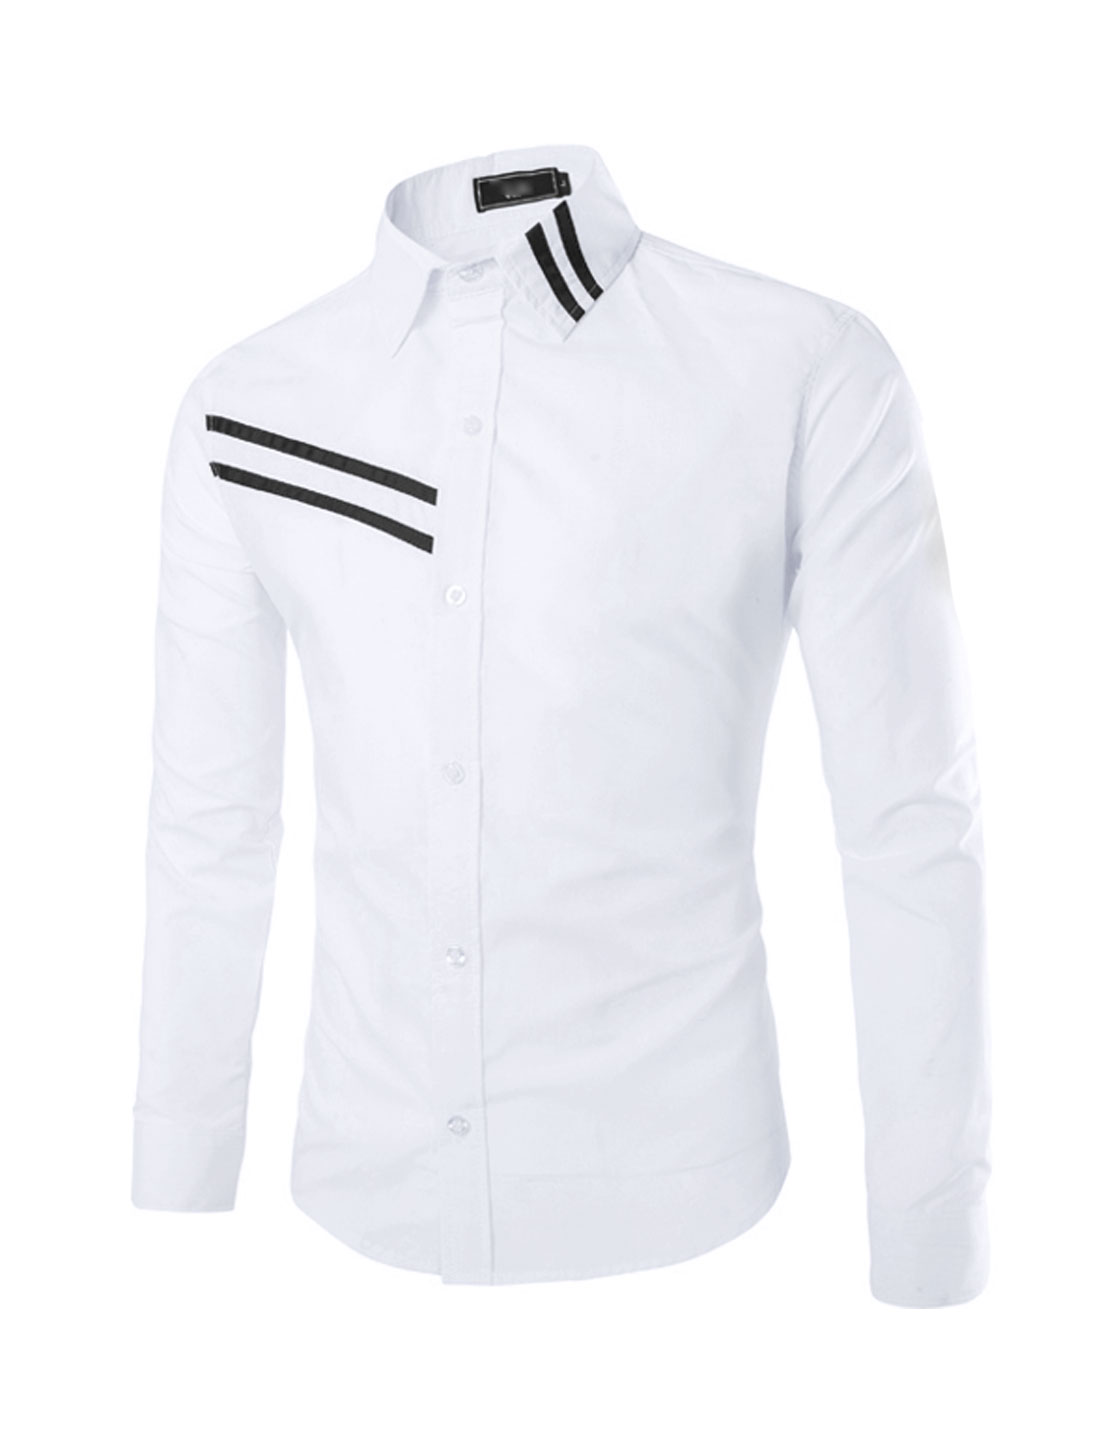 Men Point Collar Long Sleeve Slim-Fit Casual Shirt White S